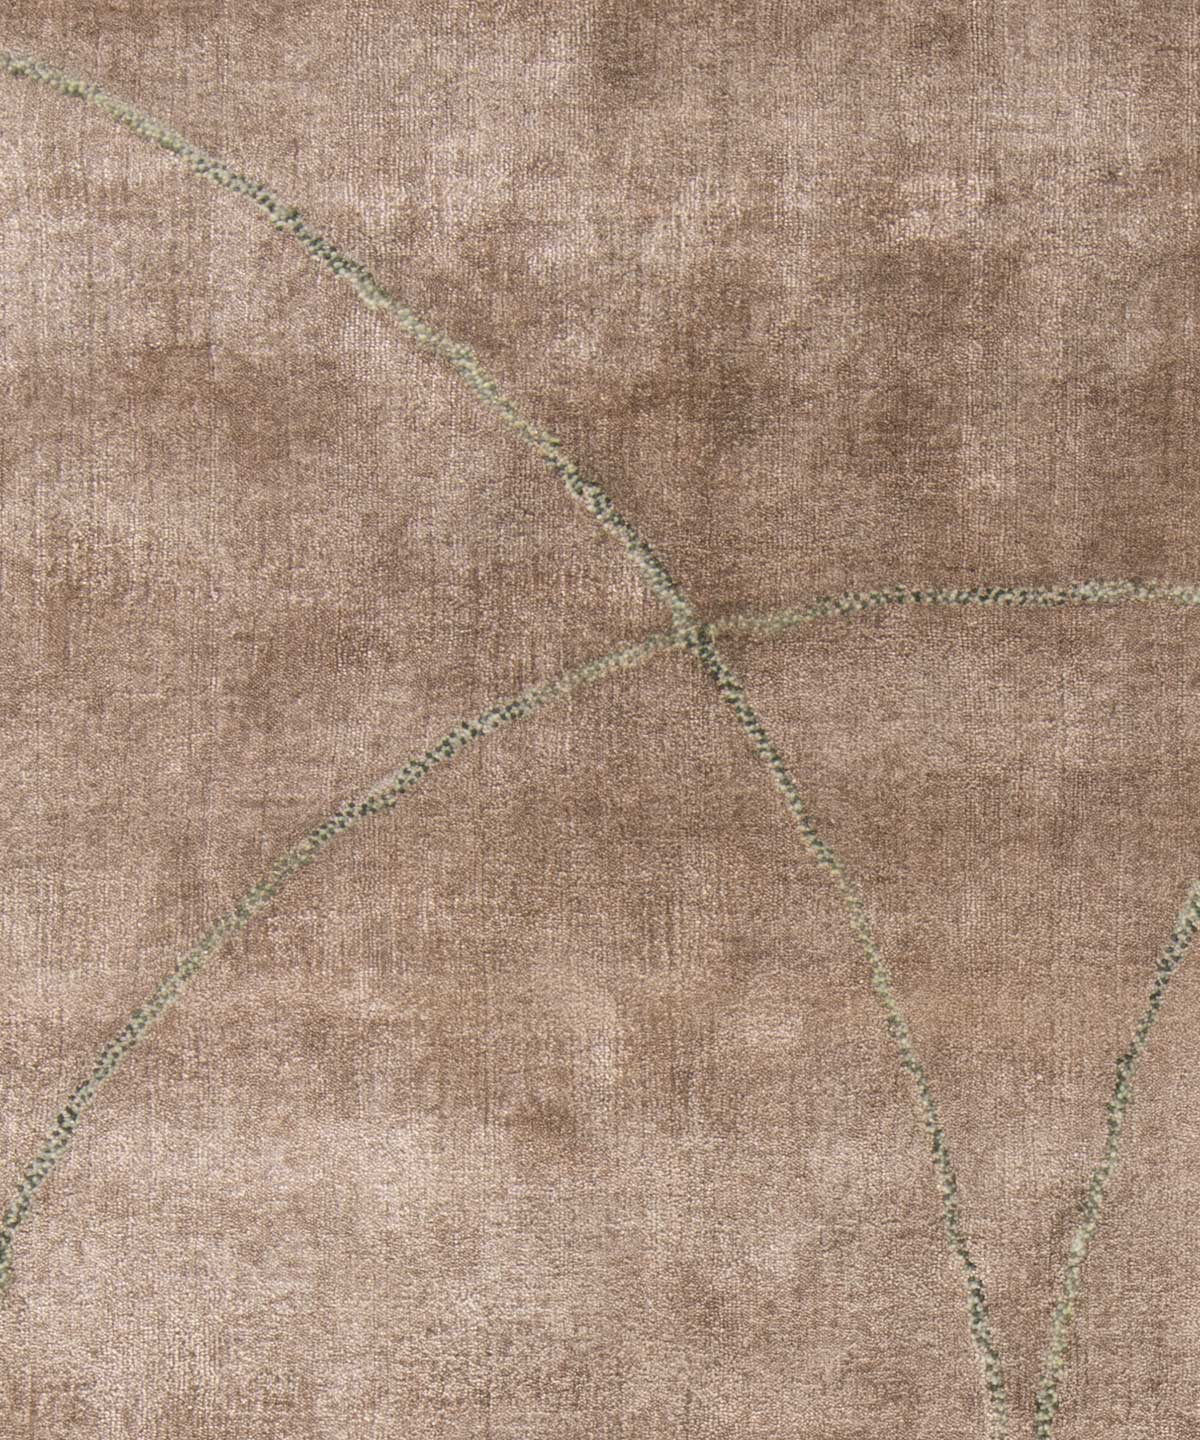 Circulus Rug in Powder